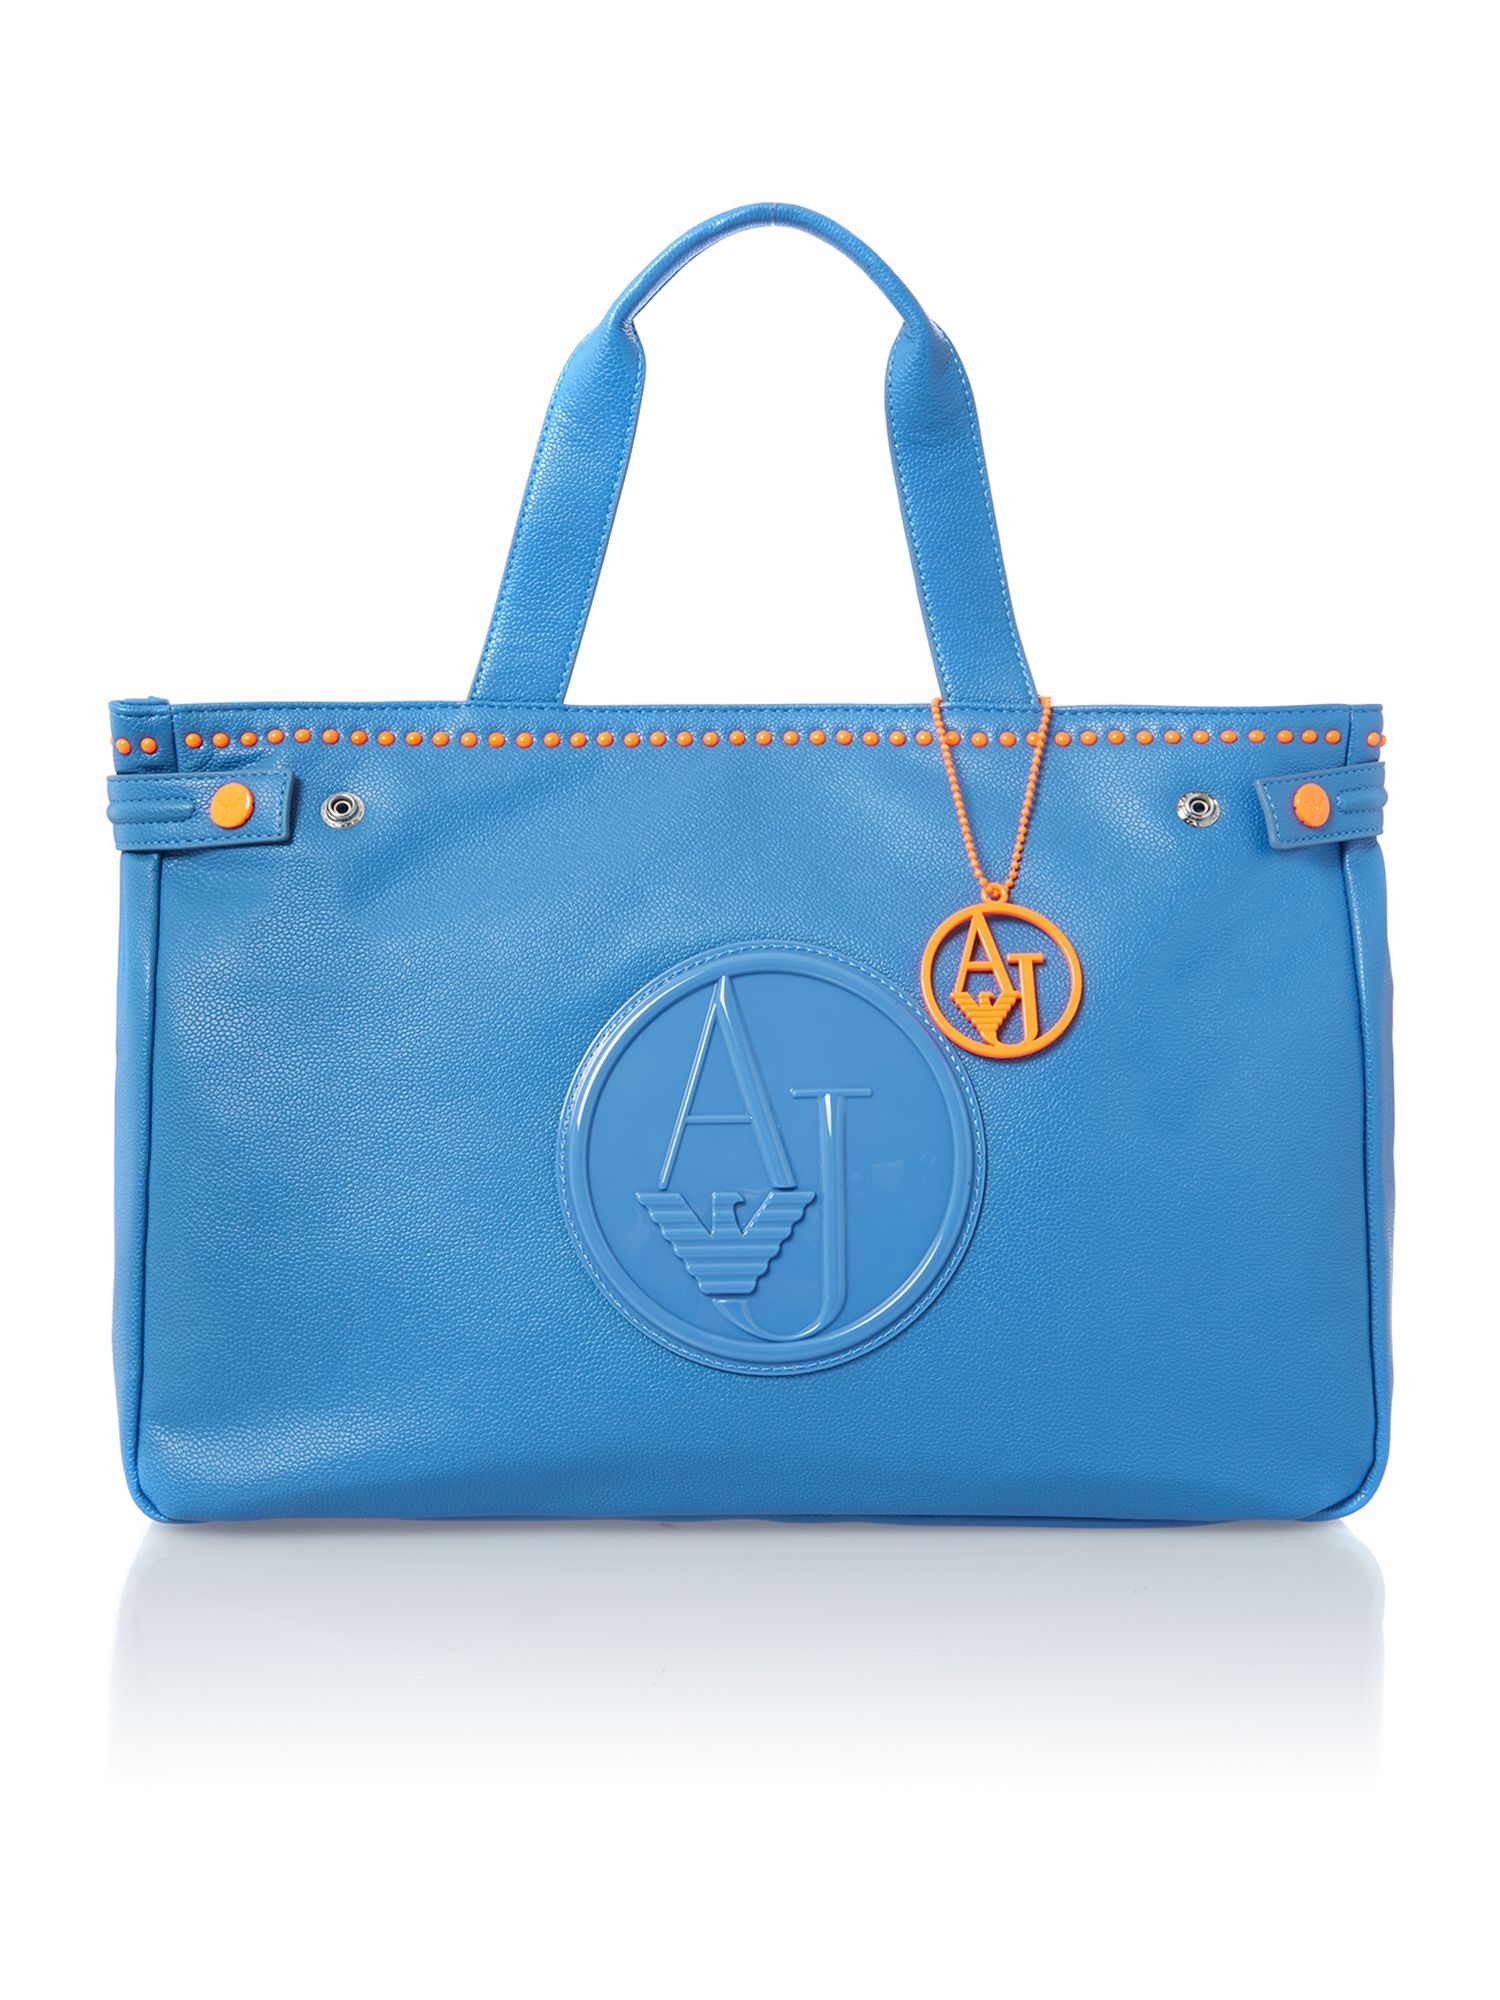 Blue neon stud tote bag